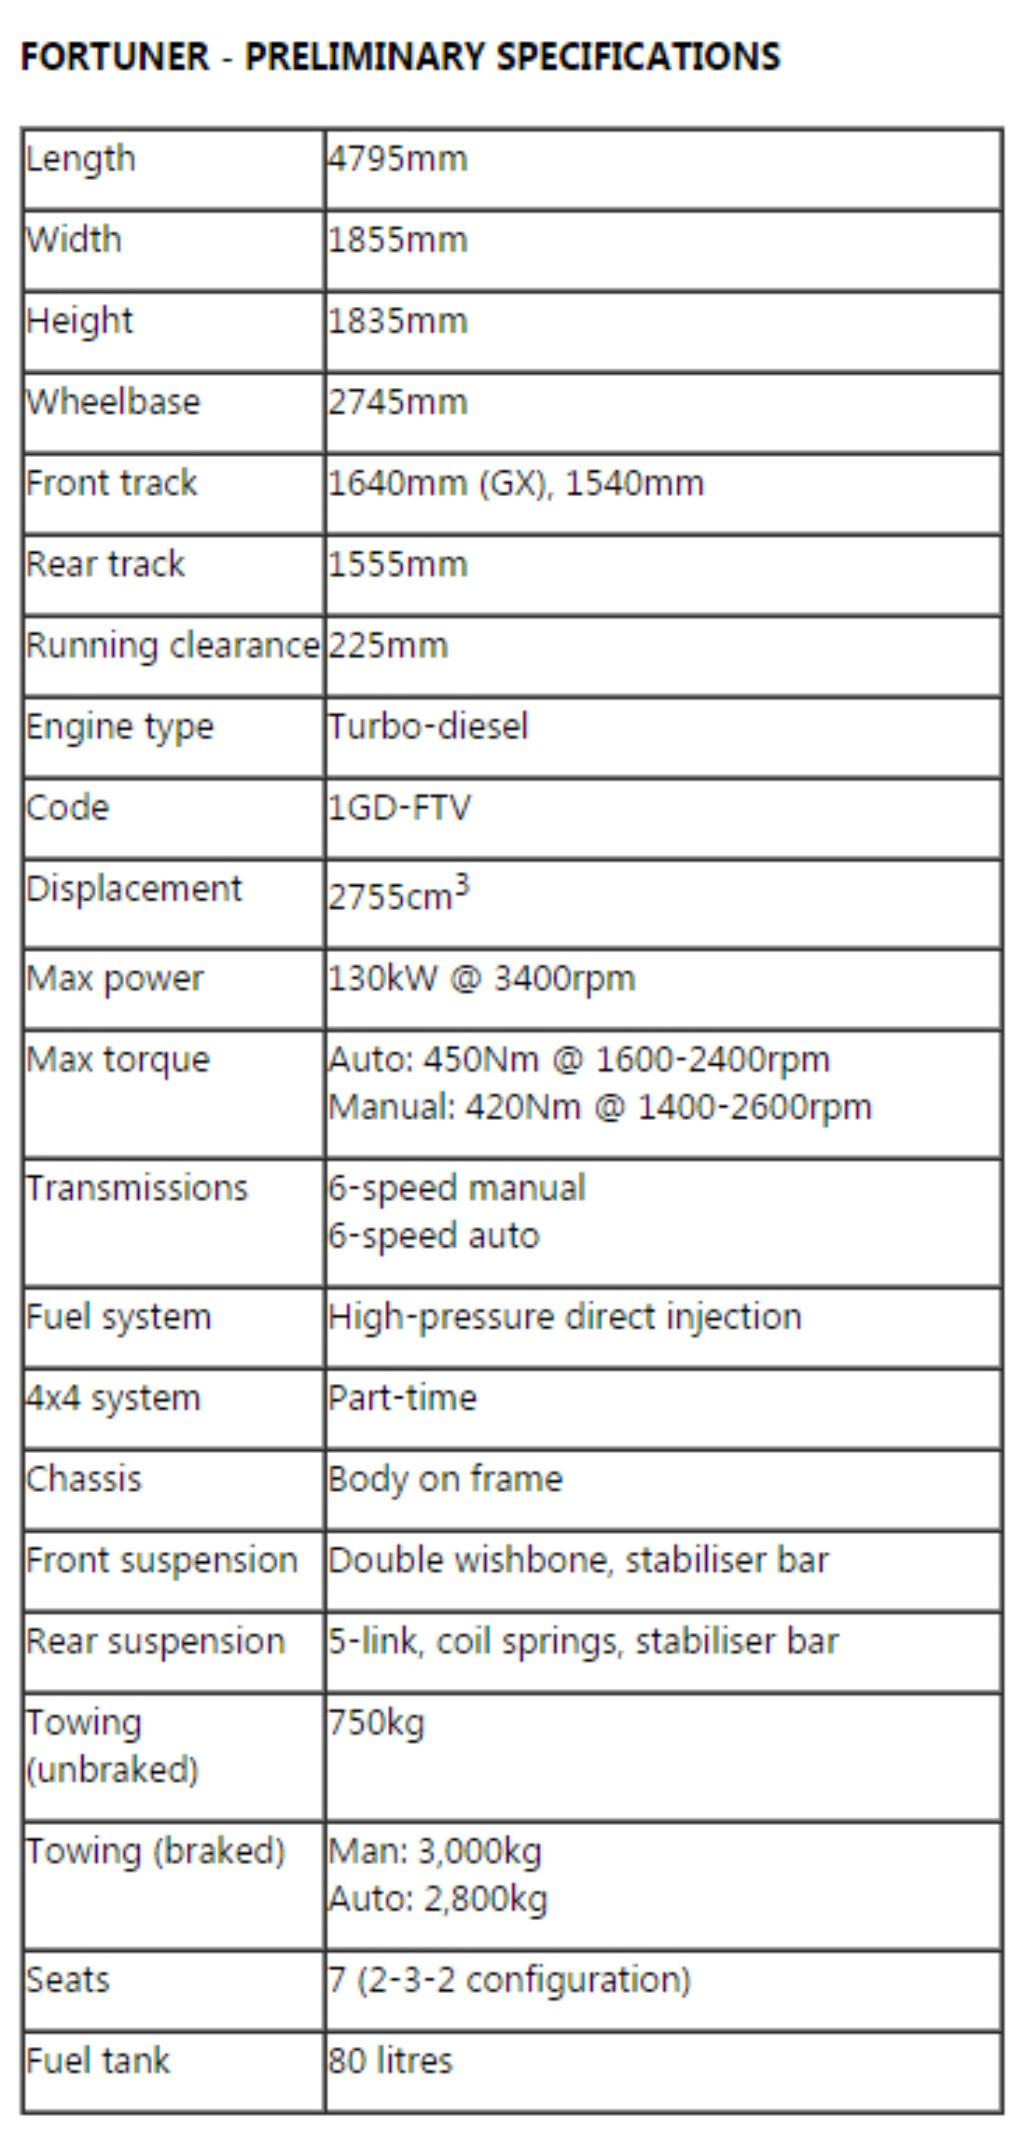 2016 Toyota Fortuner Specification